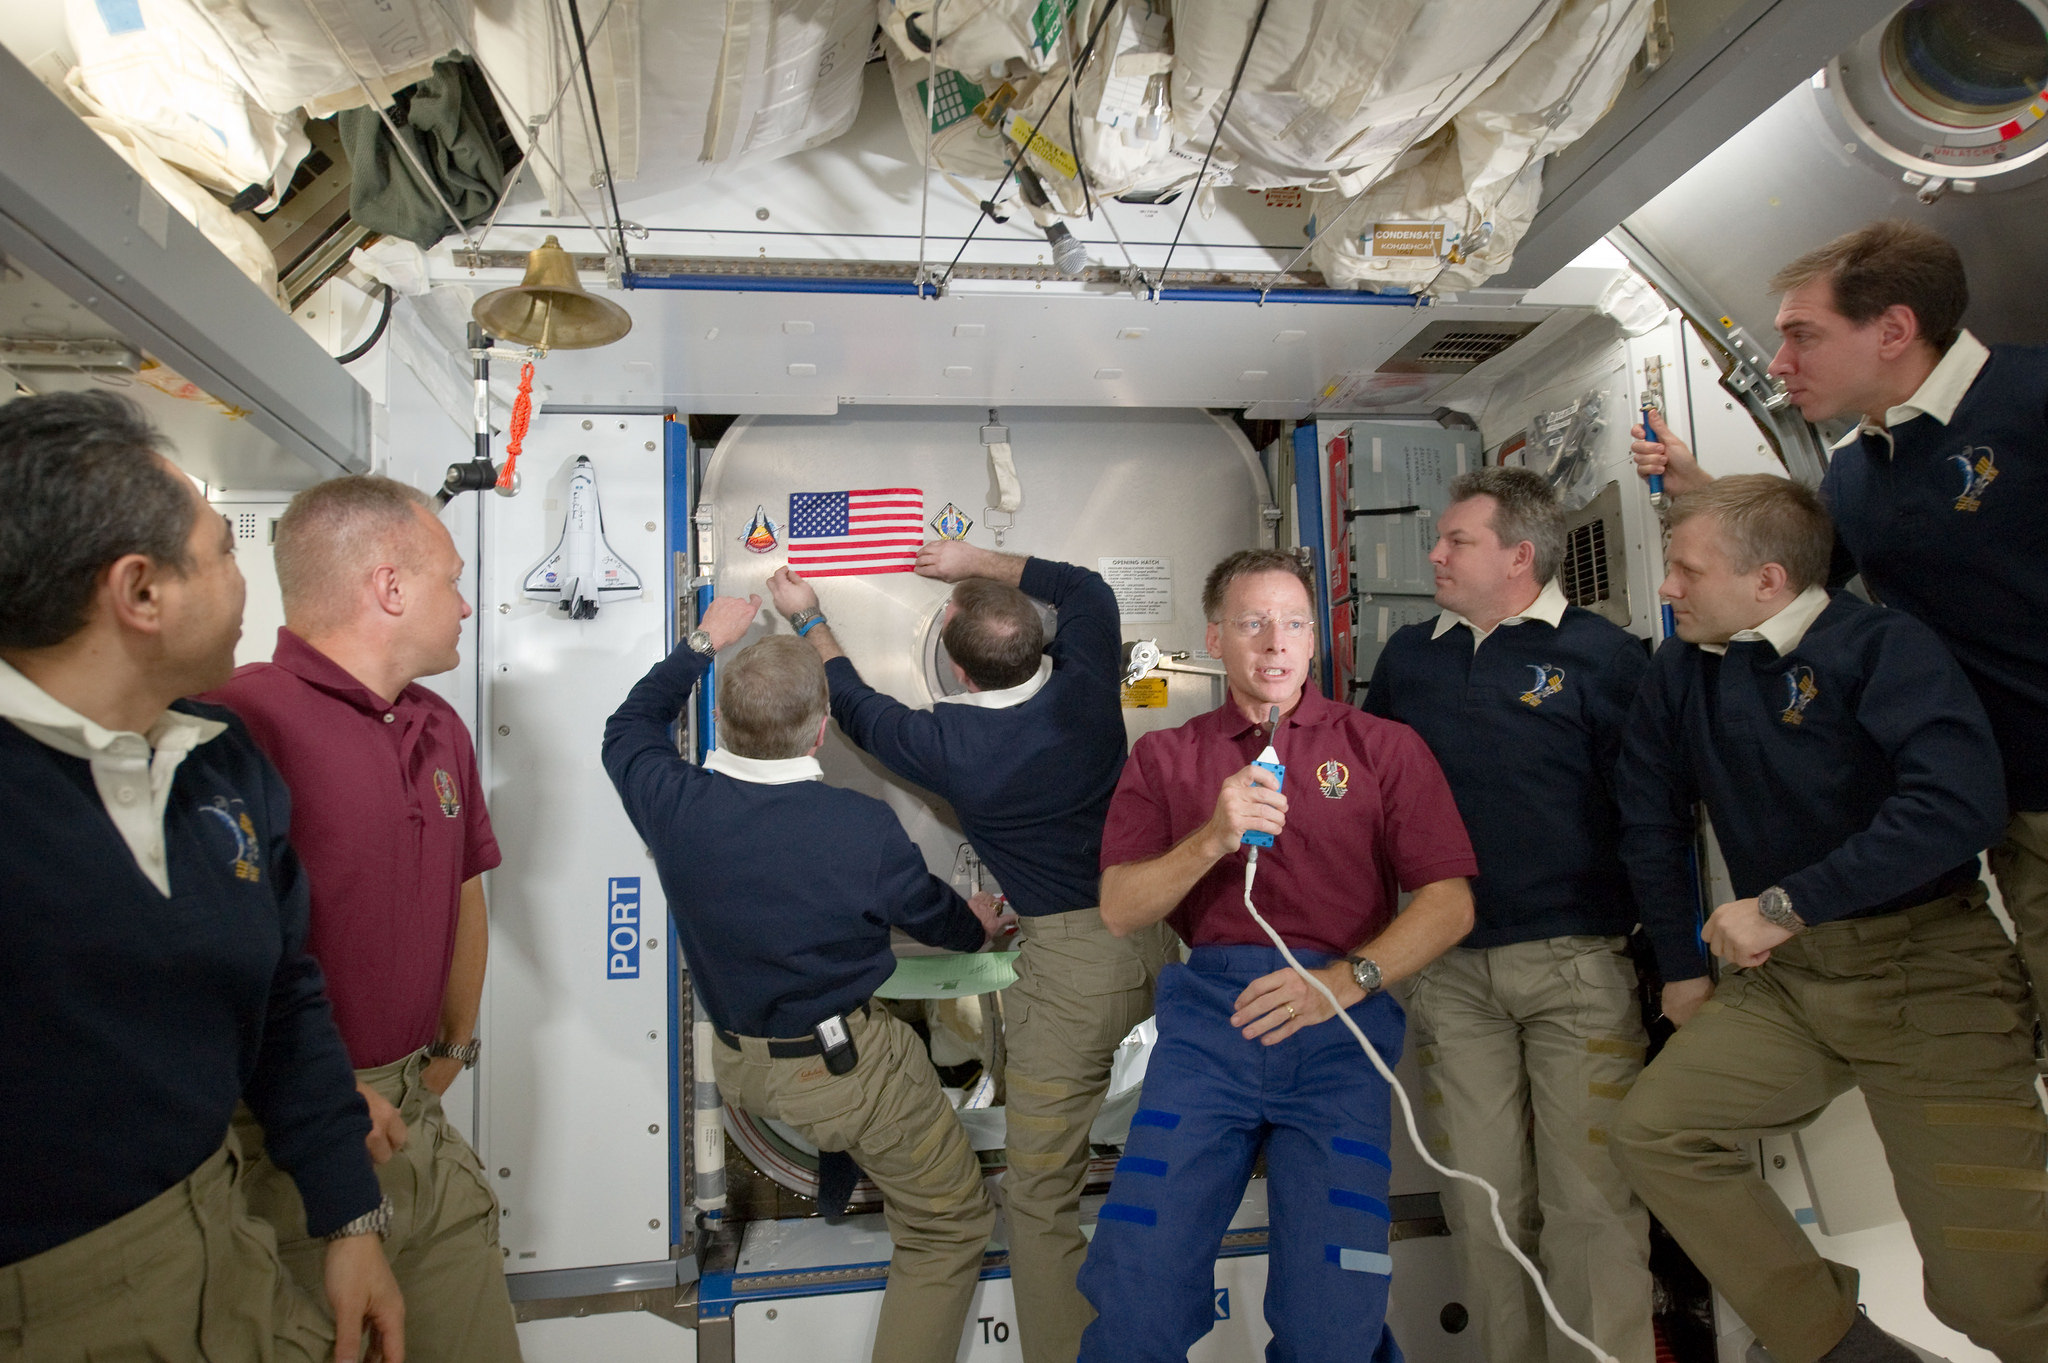 Mike Fossum and Ron Garan hang an American Flag on the station, during a ceremony, as Chris Ferguson says a few words.